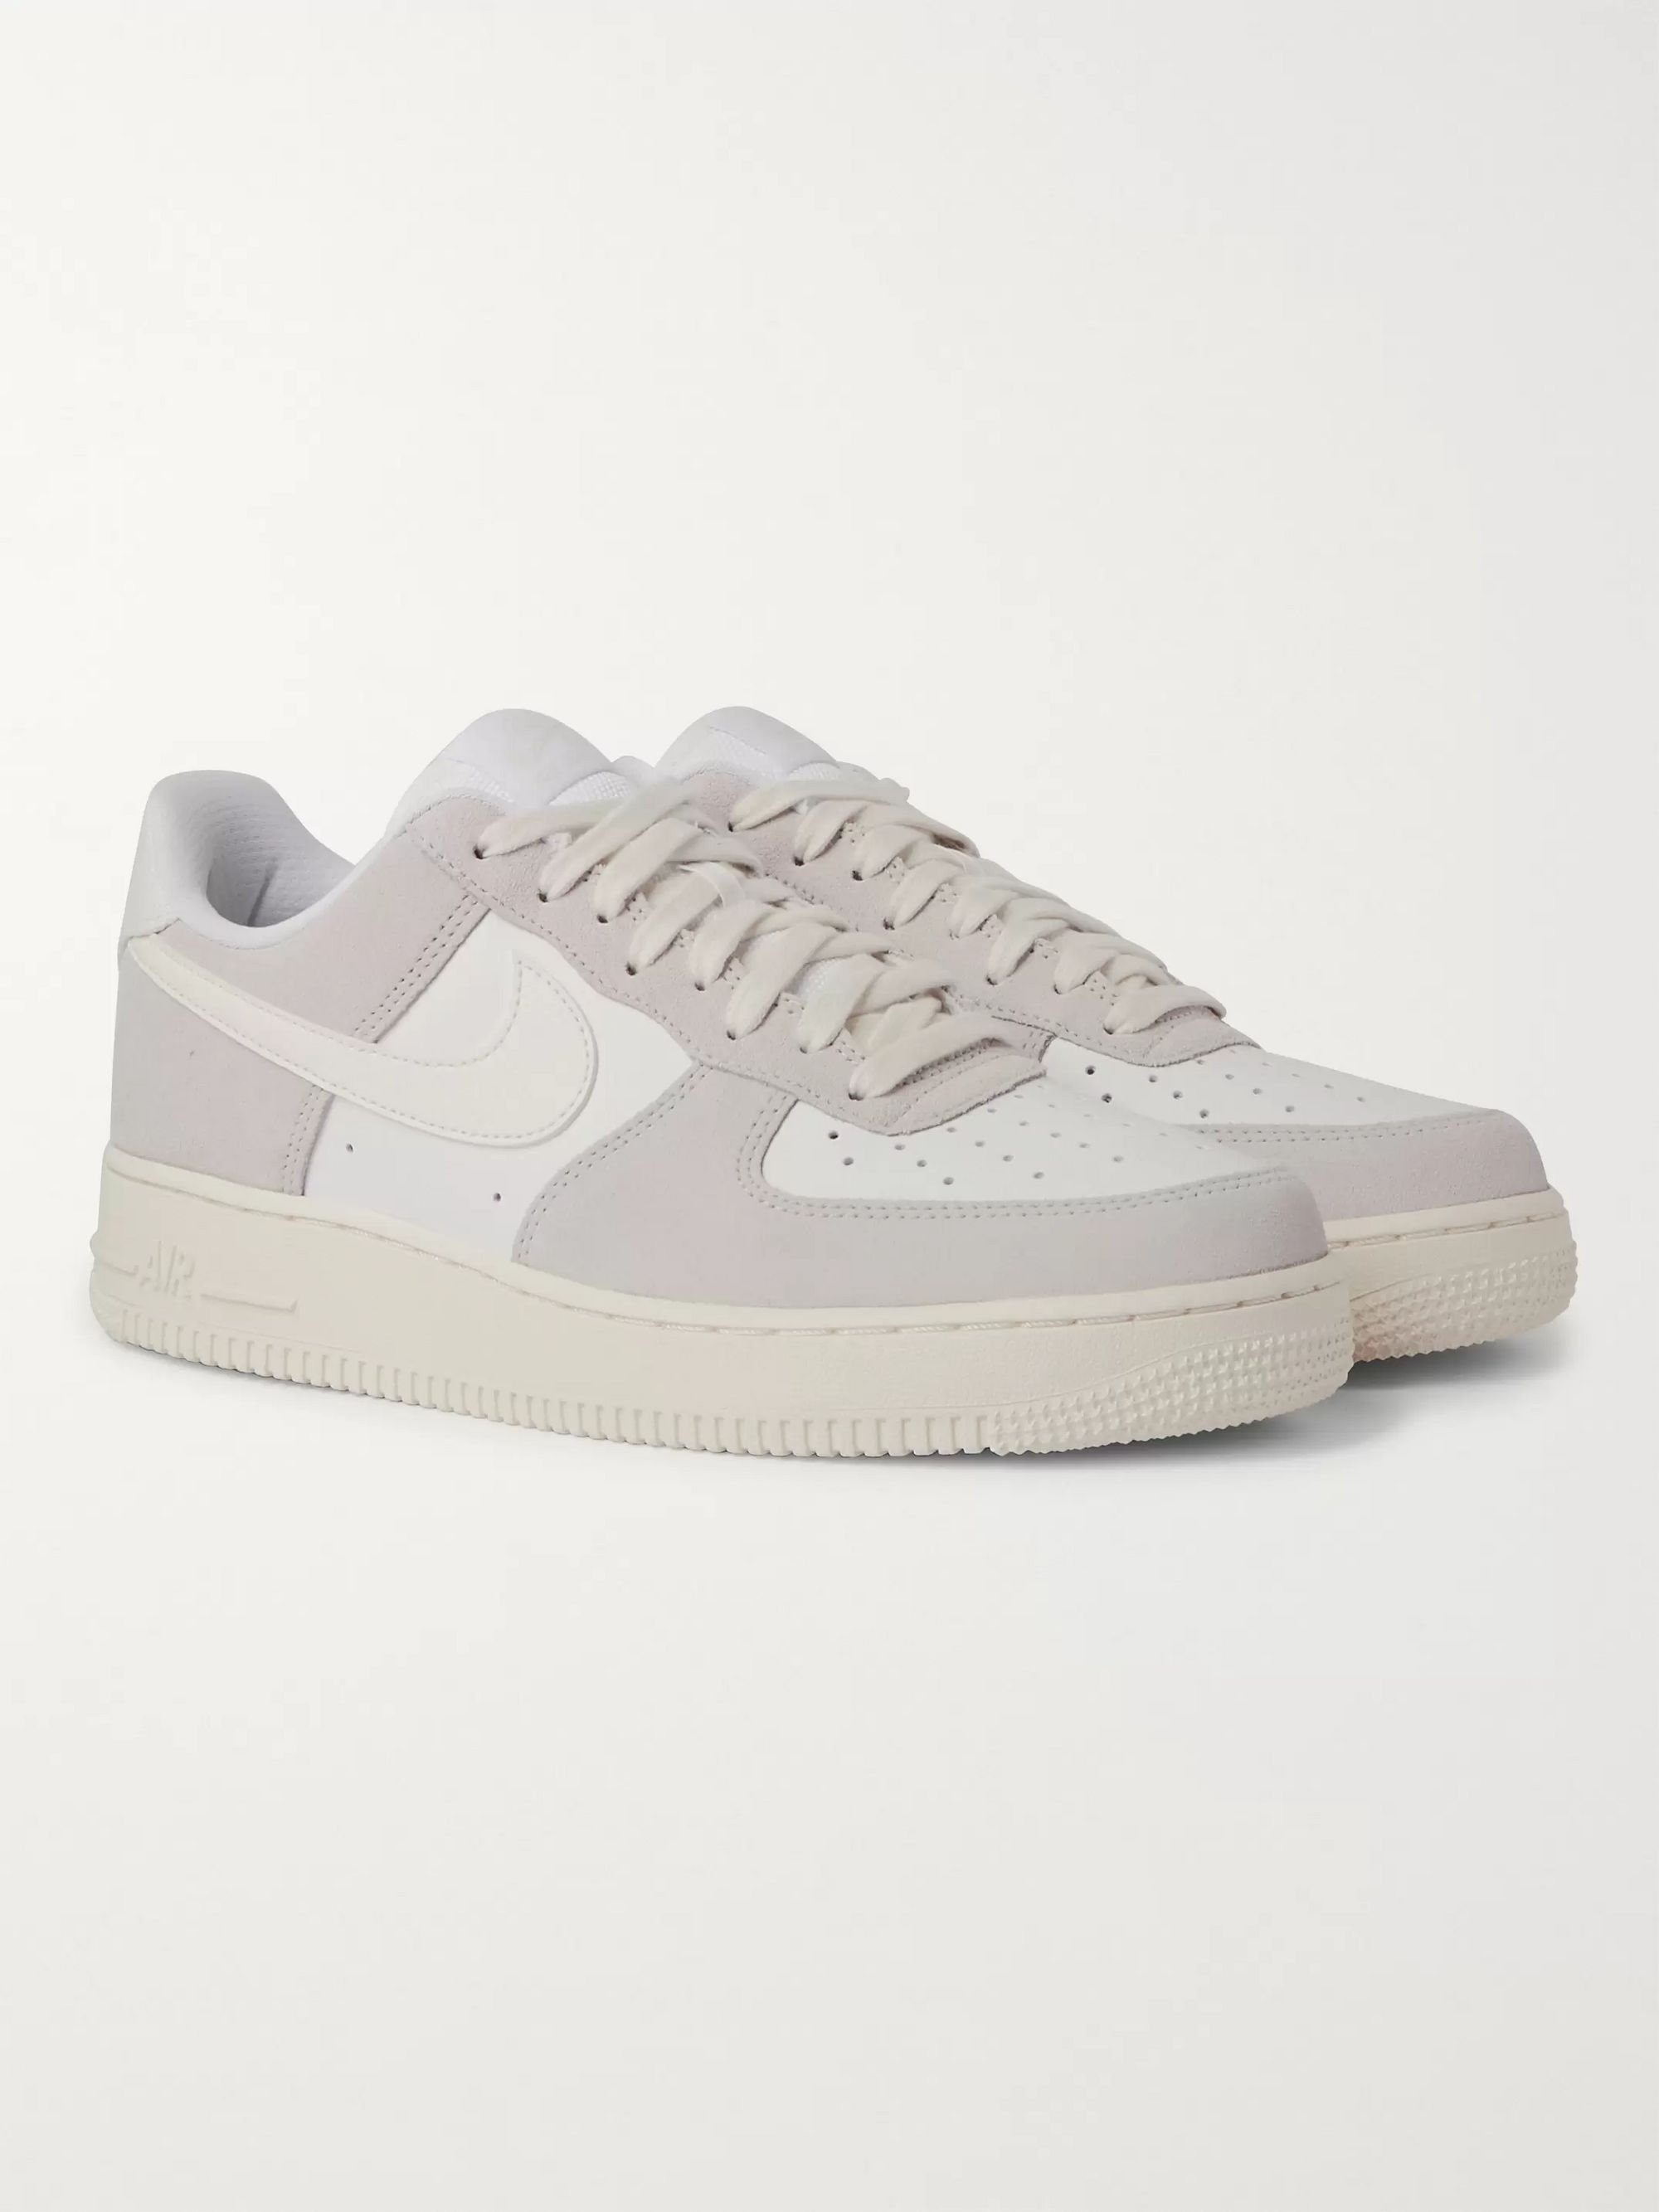 White Nike Air Force 1 LV8 Leather and